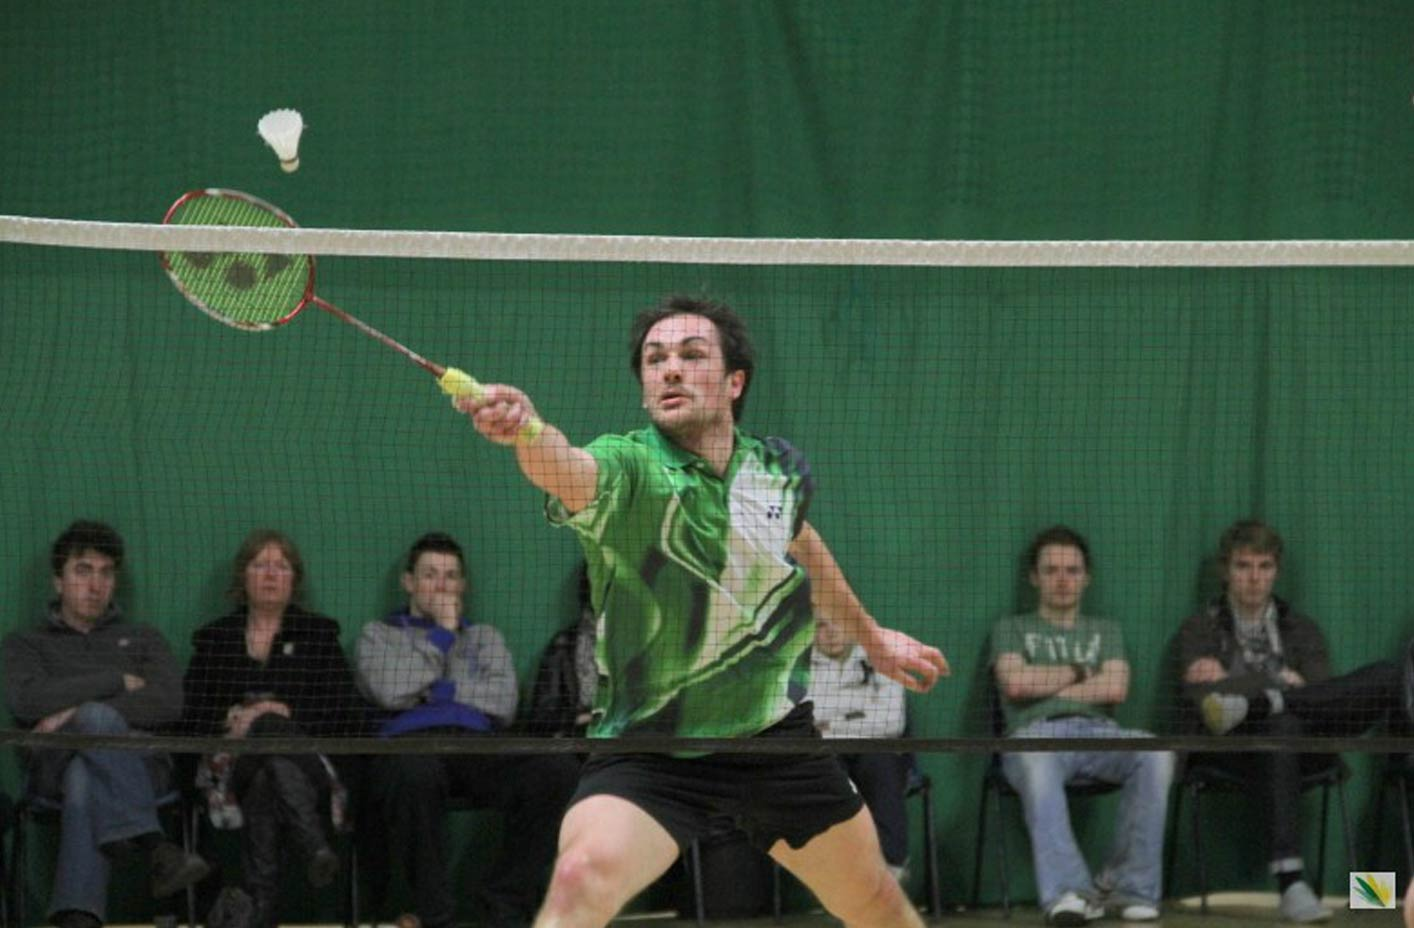 Badminaton action at the National Finals. Photo: Leinster Badminton